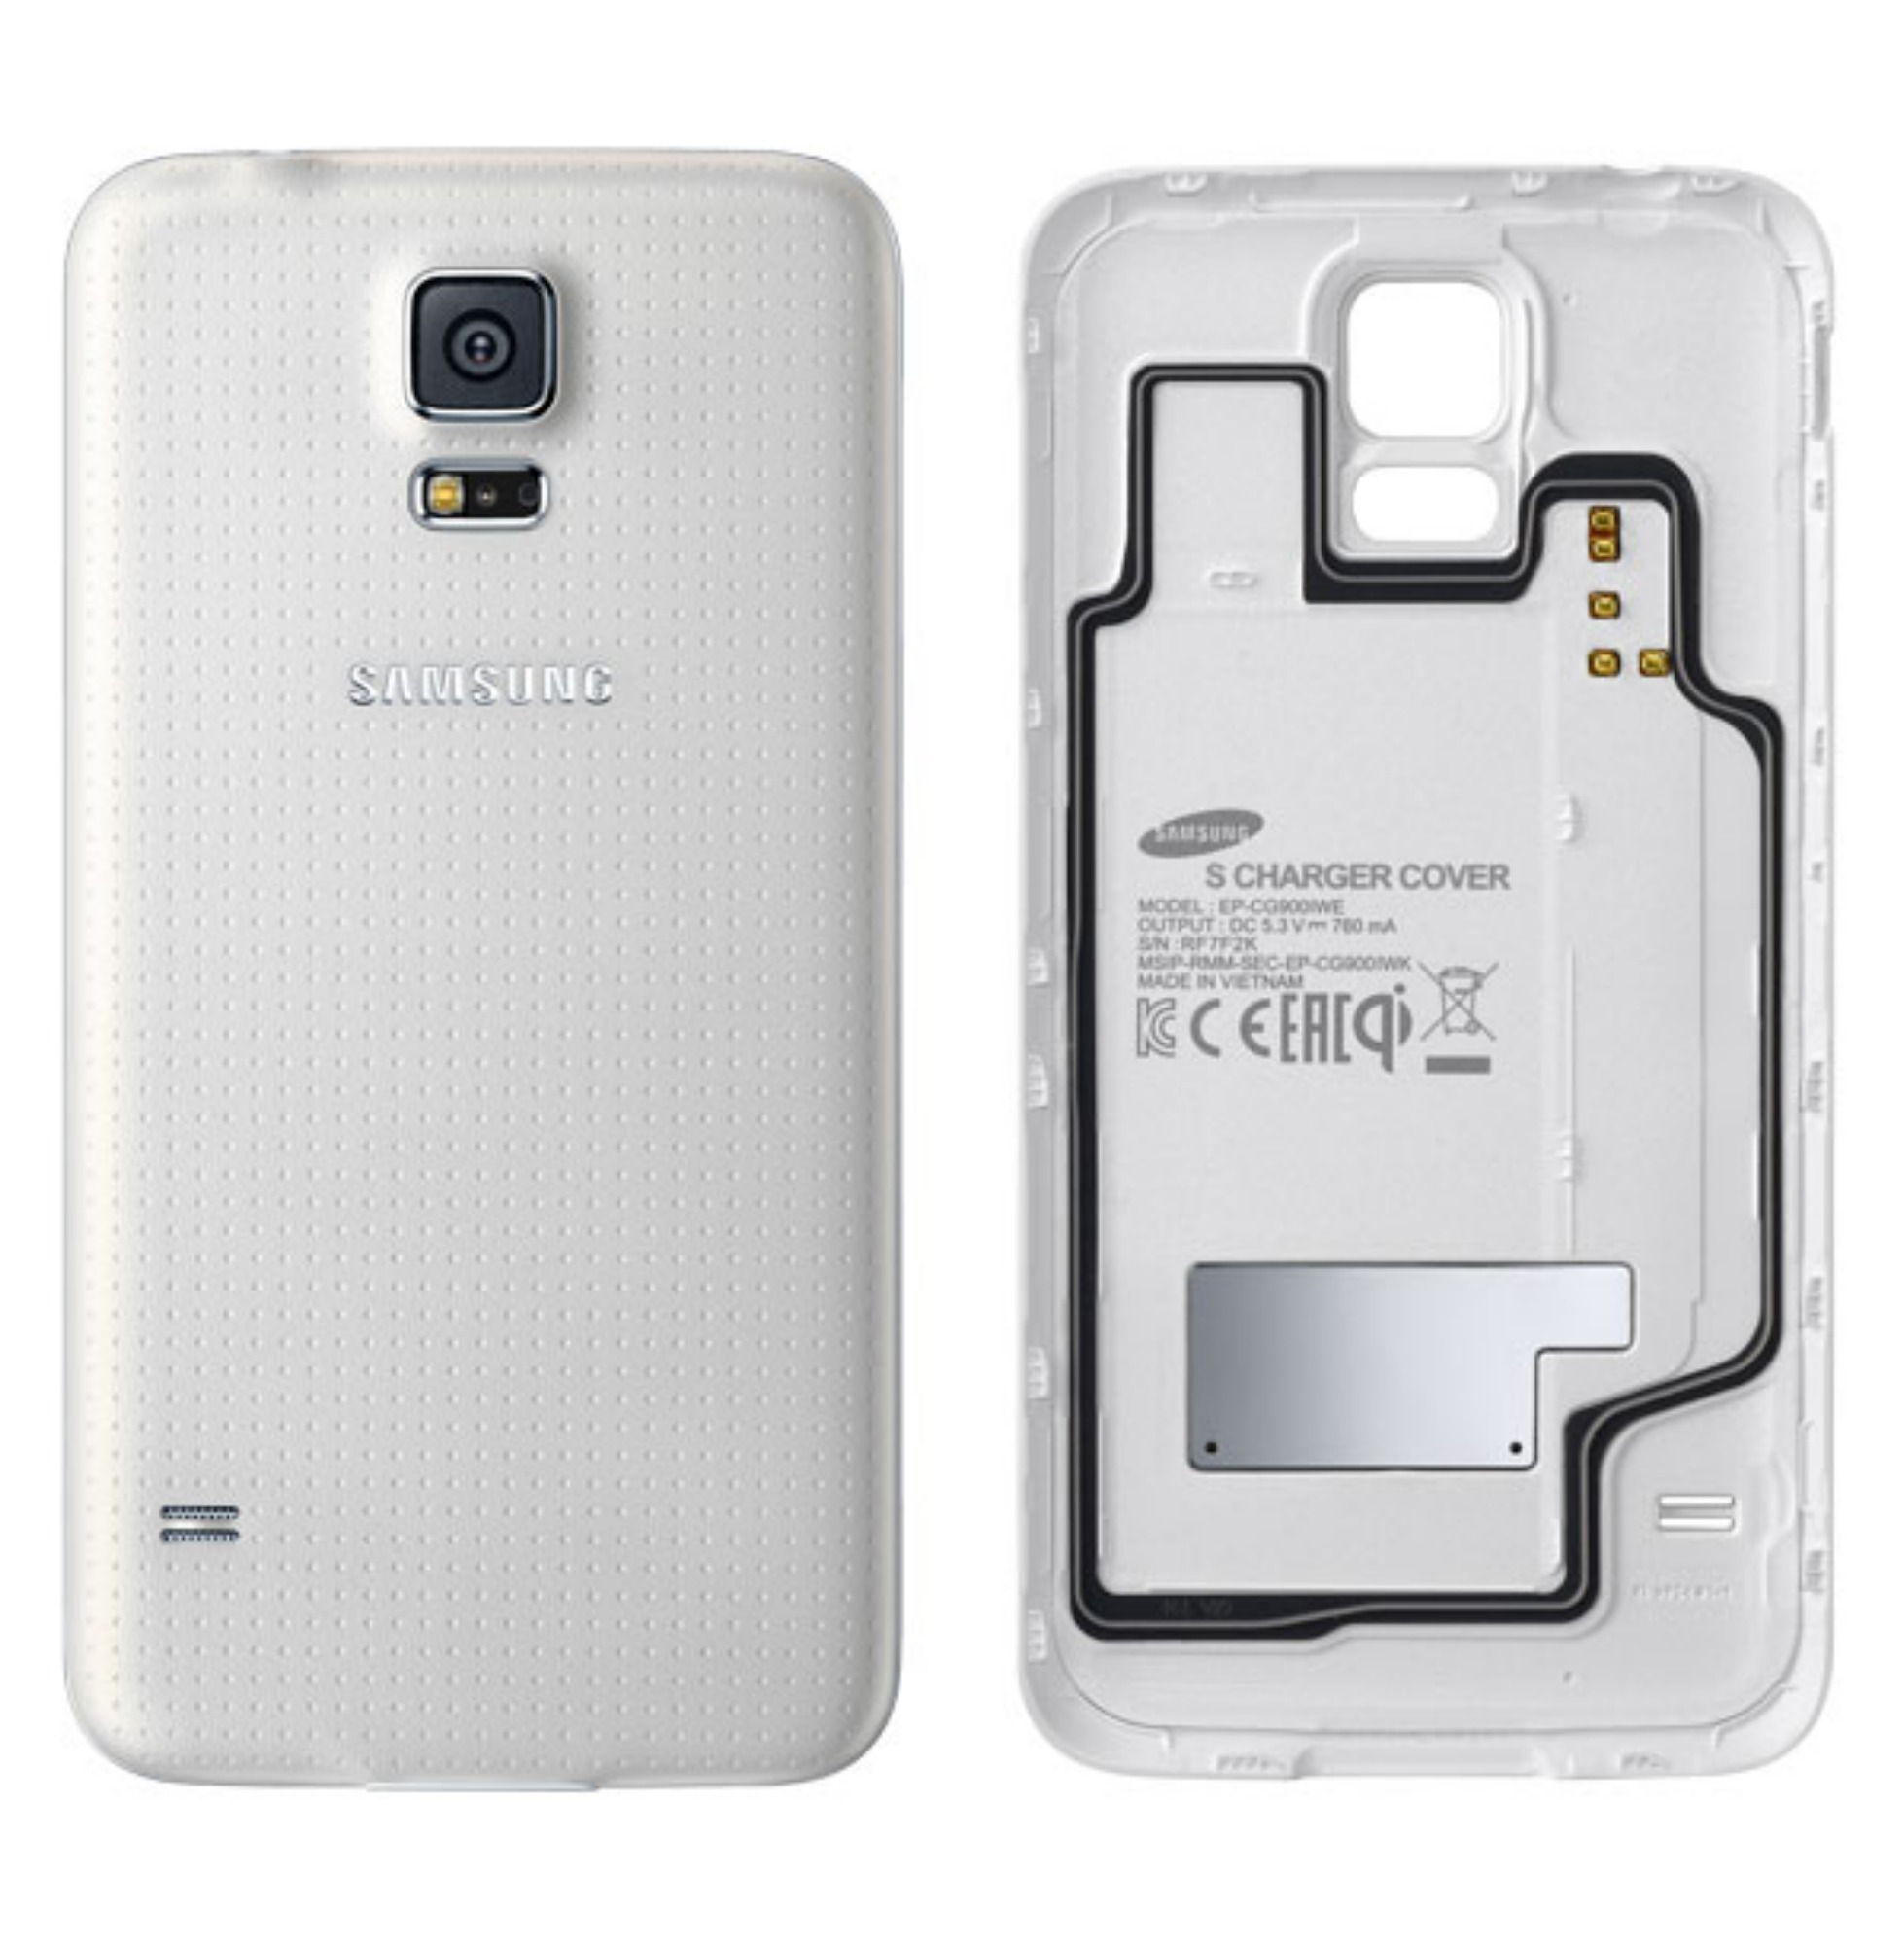 Samsung Galaxy S5 Wireless Charging Battery Covers Now